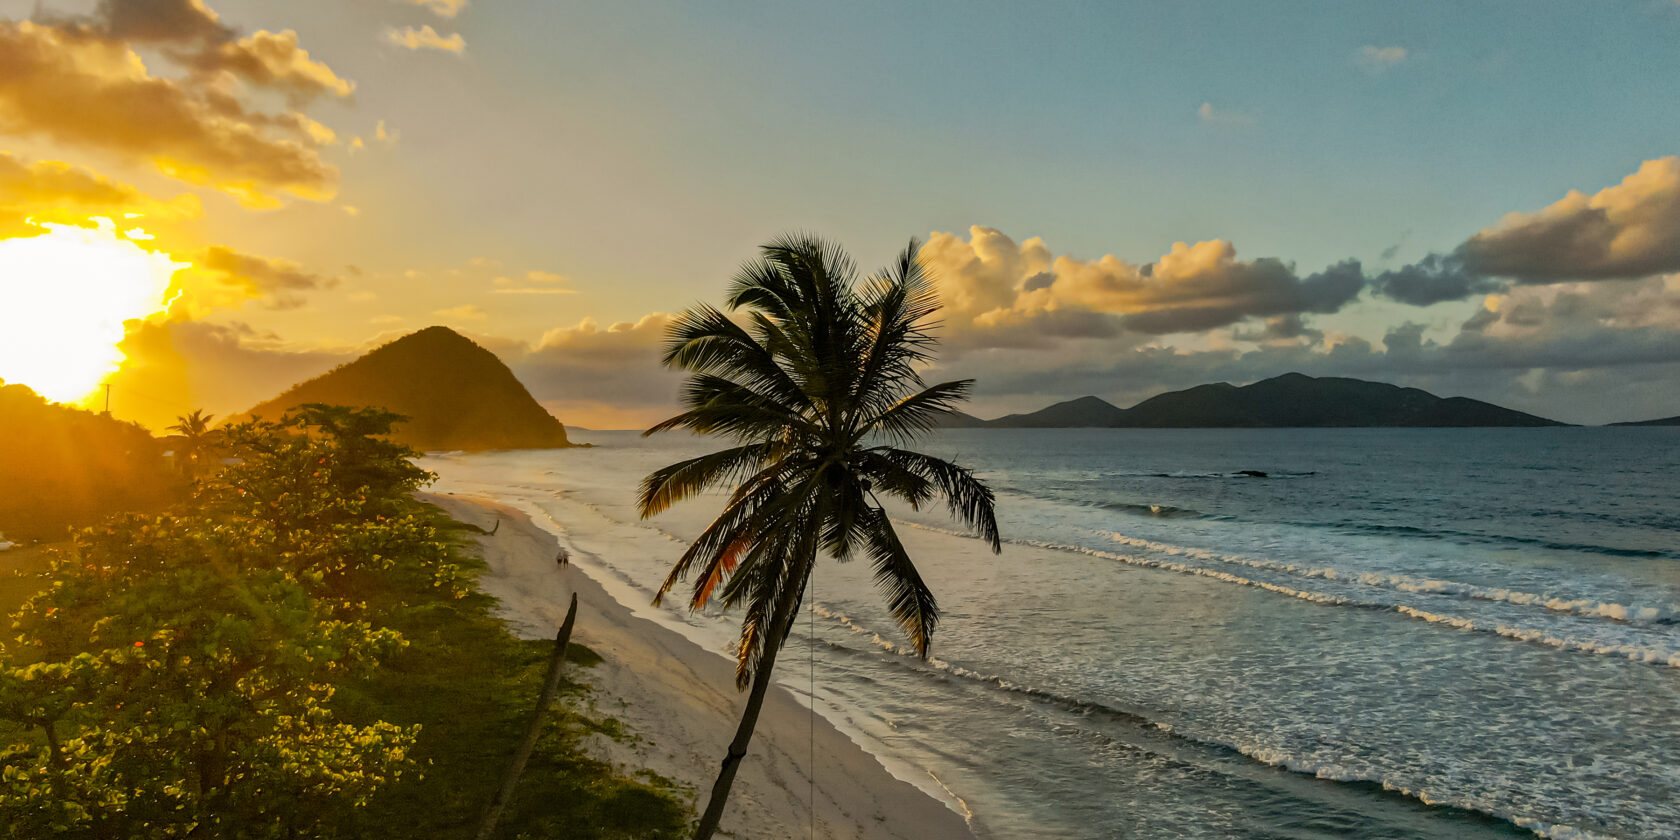 The view from Long Bay Beach Resort on the island of Tortola, BVI